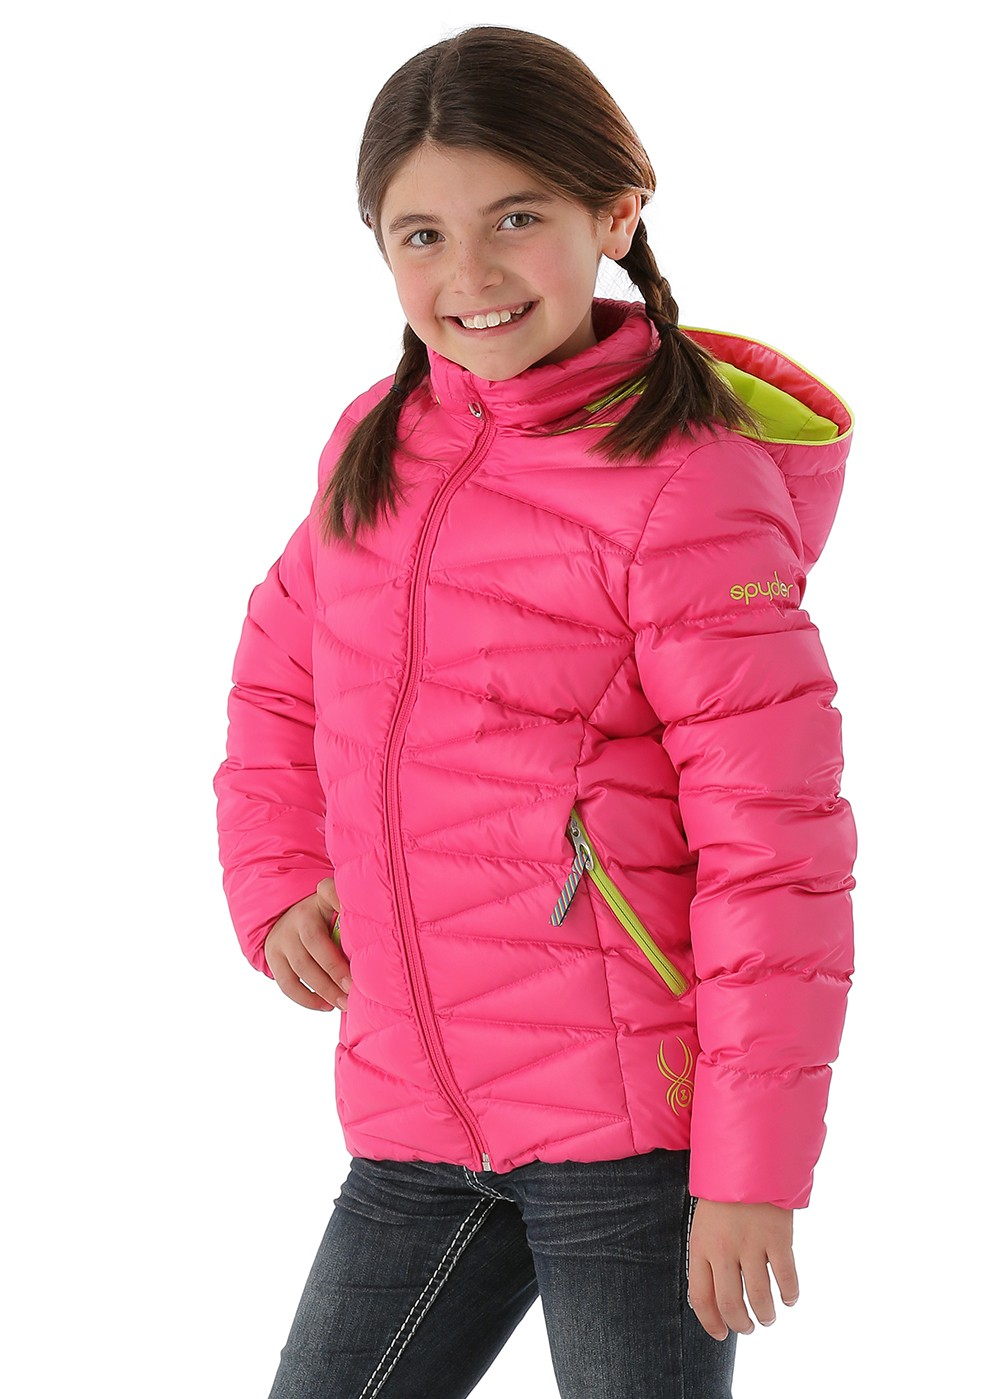 Shop a number of girls' winter jackets from some of the industry's best brands and bring home girls' coats that will help her stay warm in the elements. It is important that kids get exercise and fresh air .